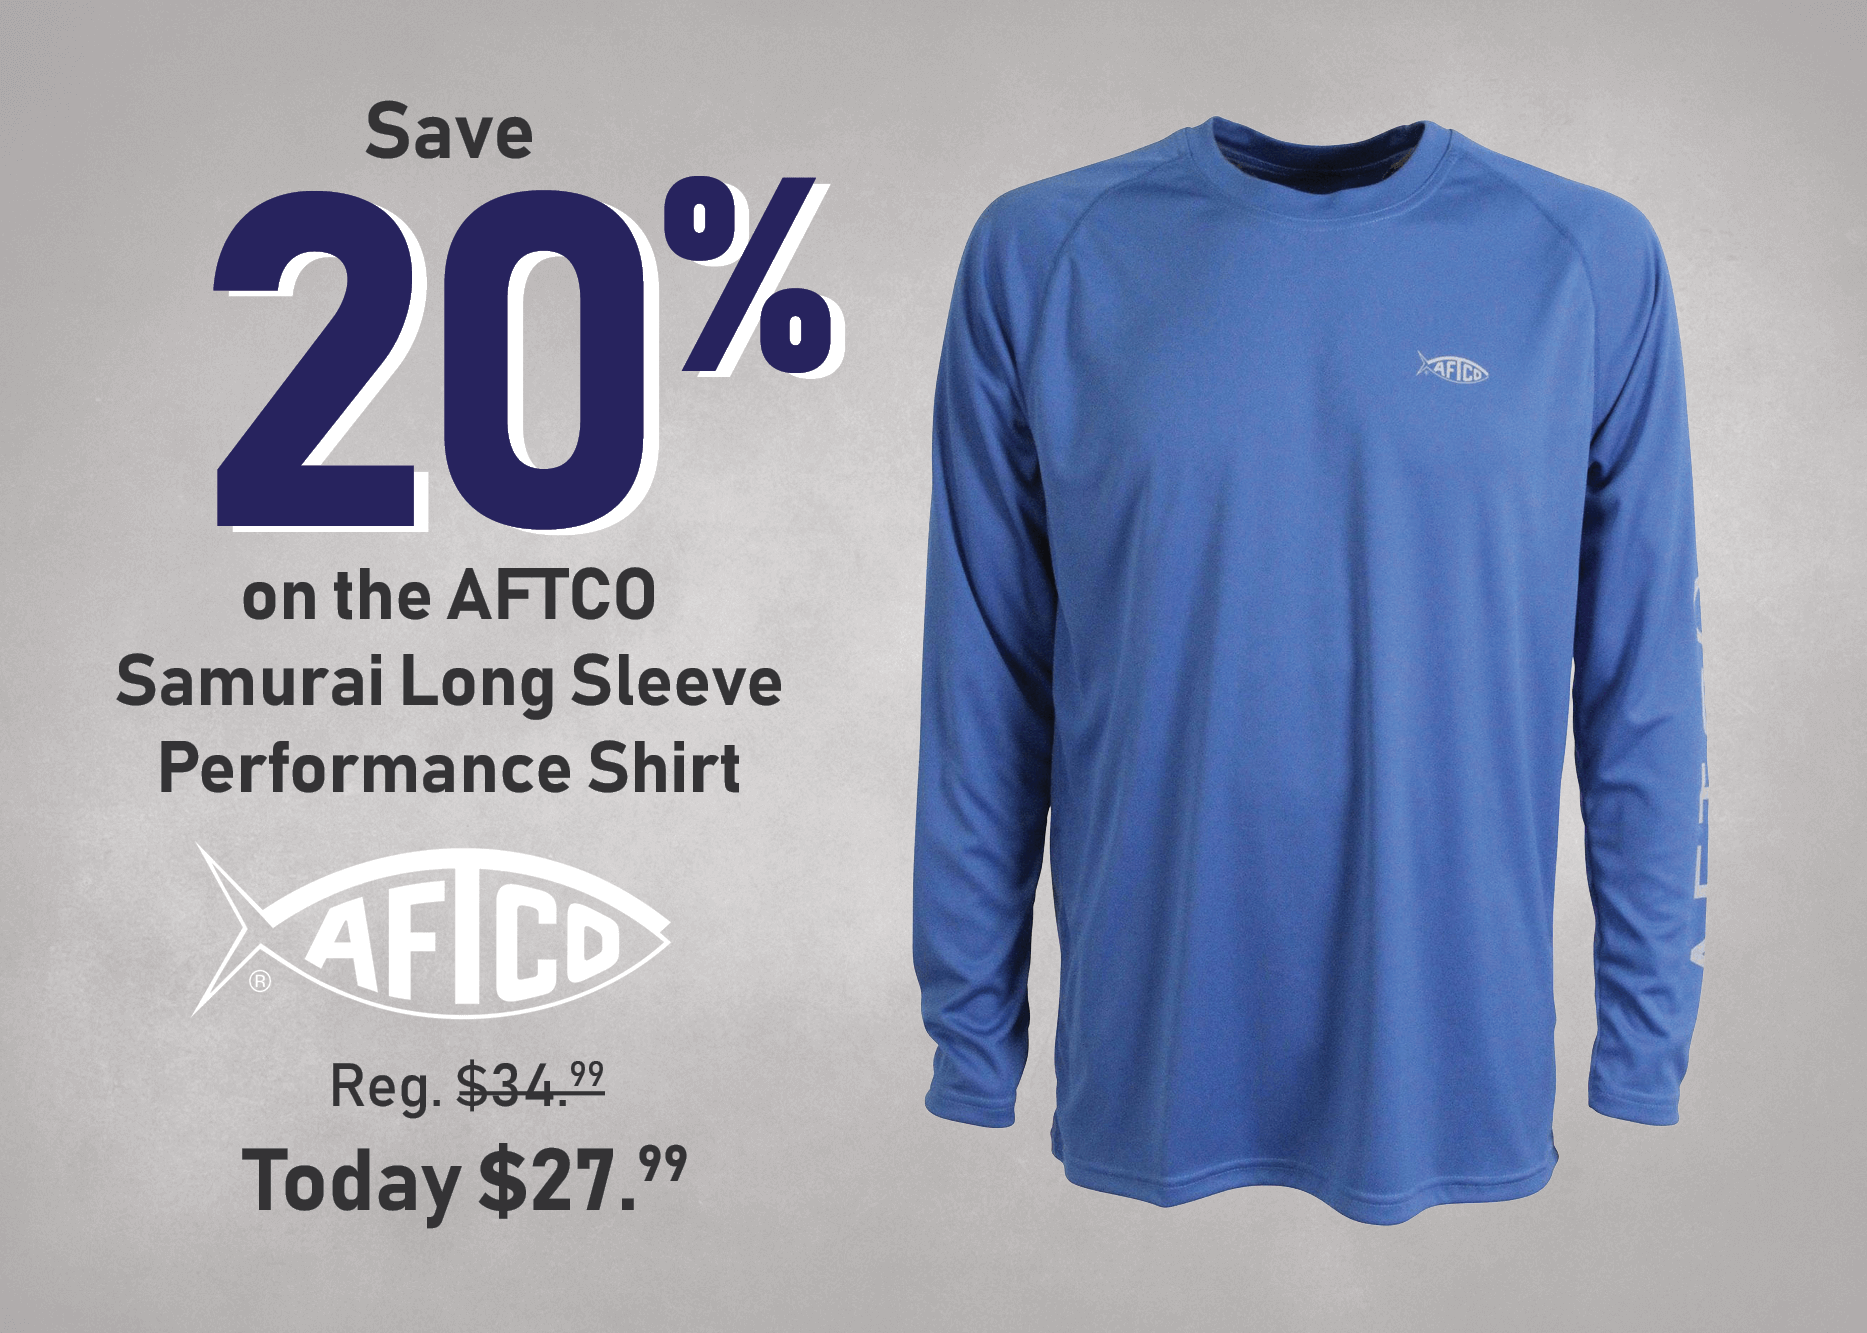 Save 20% on the AFTCO Samurai Long Sleeve Performance Shirt